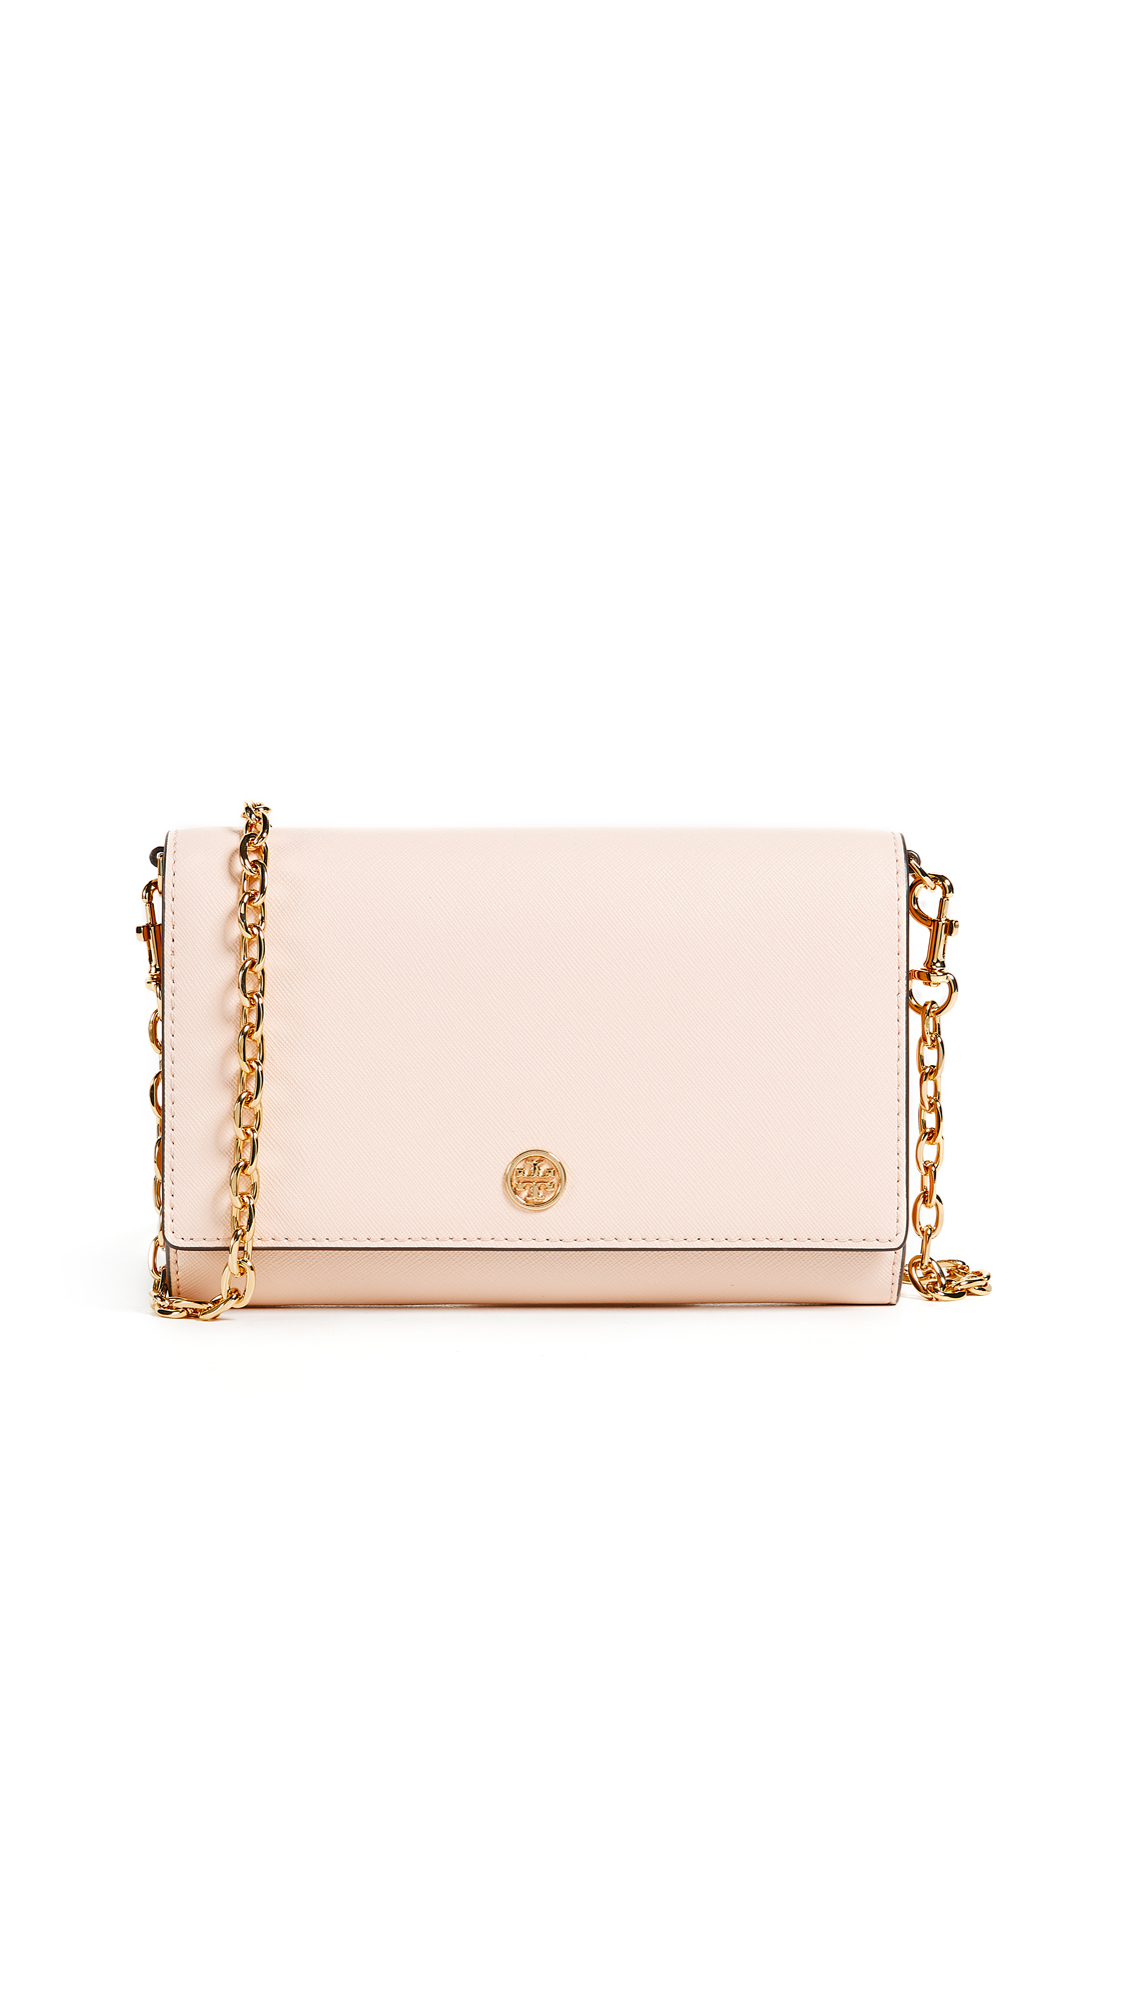 Tory Burch Robinson Wallet on a Chain In Pale Apricot/Royal Navy